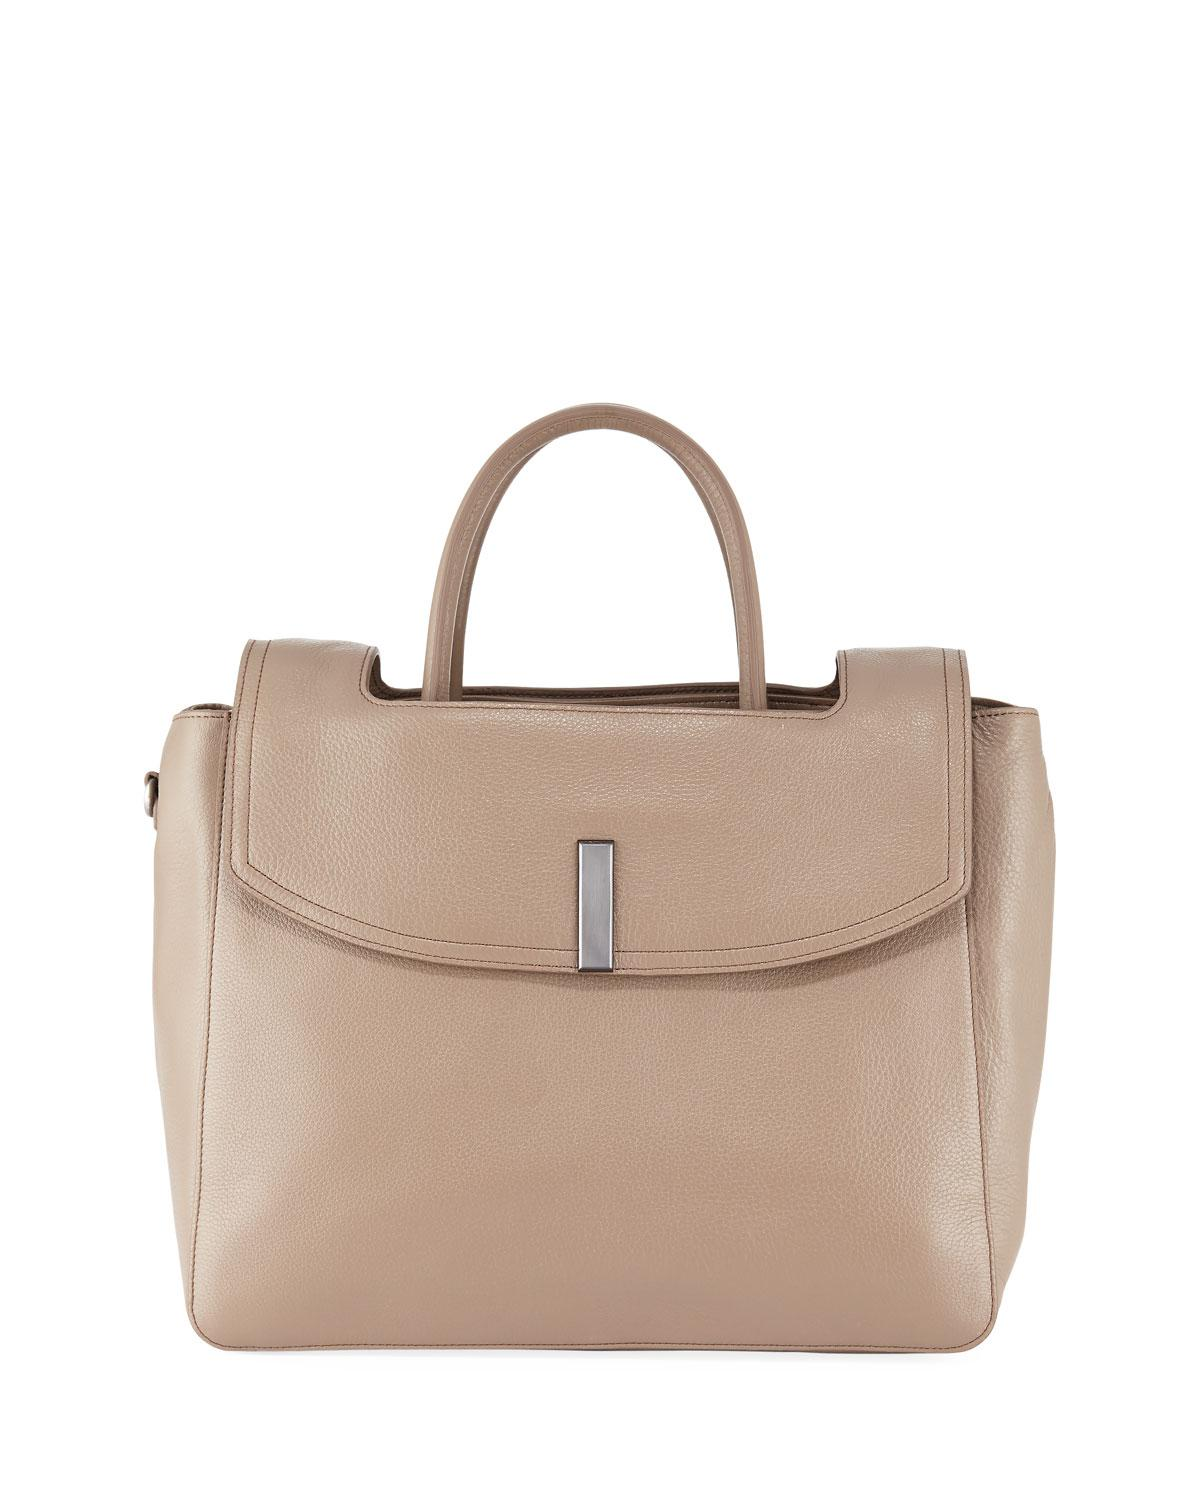 Lyst - Halston Large Tote Bag With Flap in Brown 7b424729ce14c